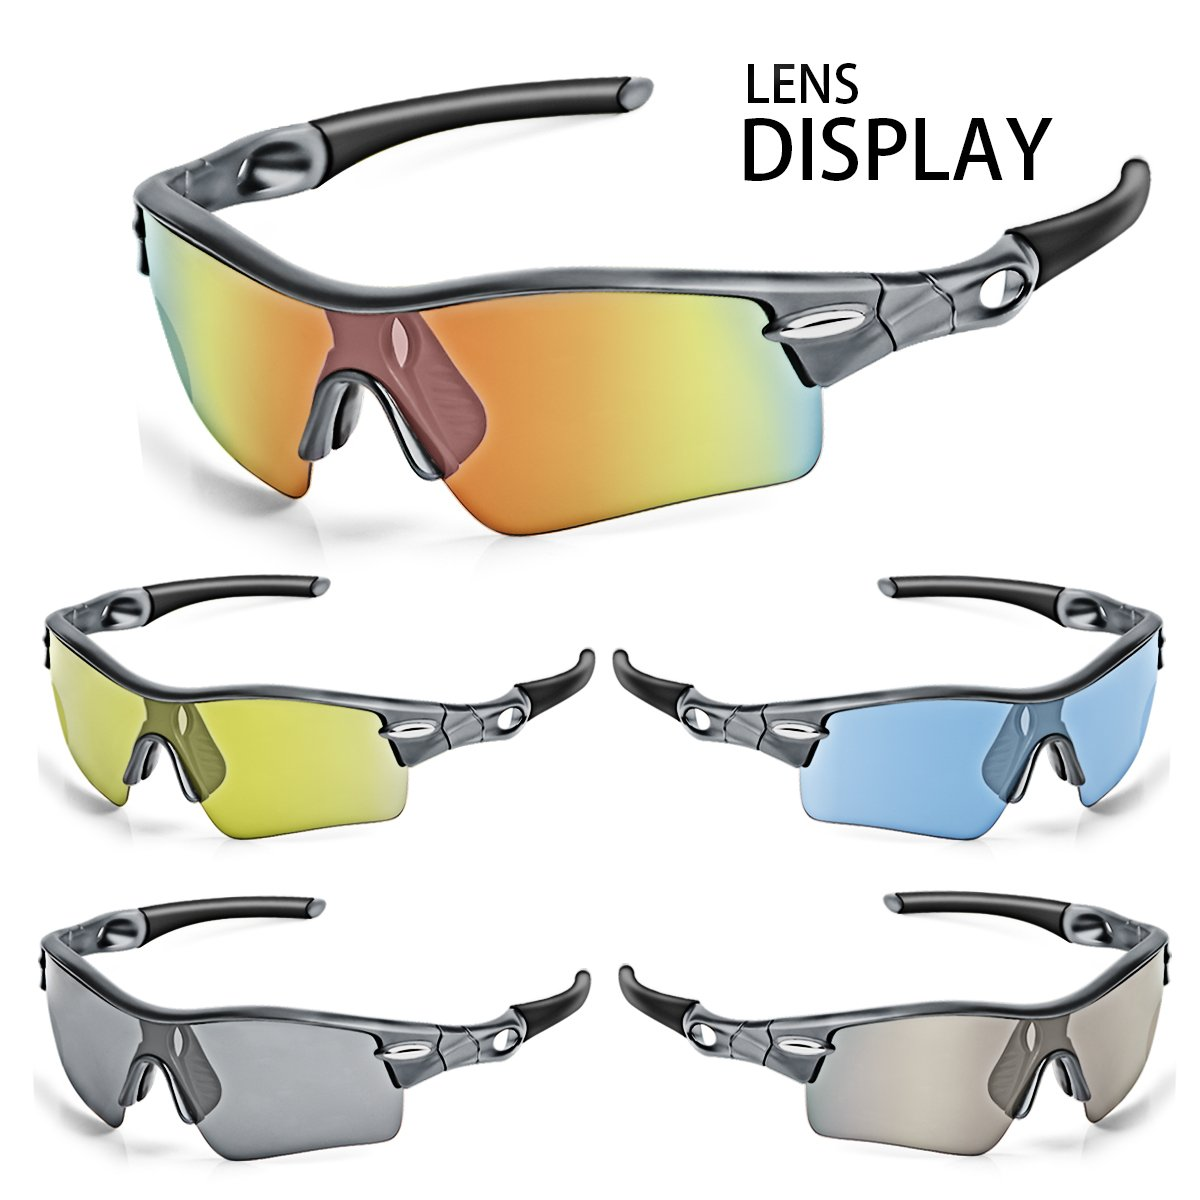 WONGKUO Polarized Outdoor Sports Glasses Men Women Cycling Sunglasses With 5 Interchangeable Lenses 100%UV Protection Fits for Fishing Running Golf Baseball Cycling Driving And All Outdoor Activities